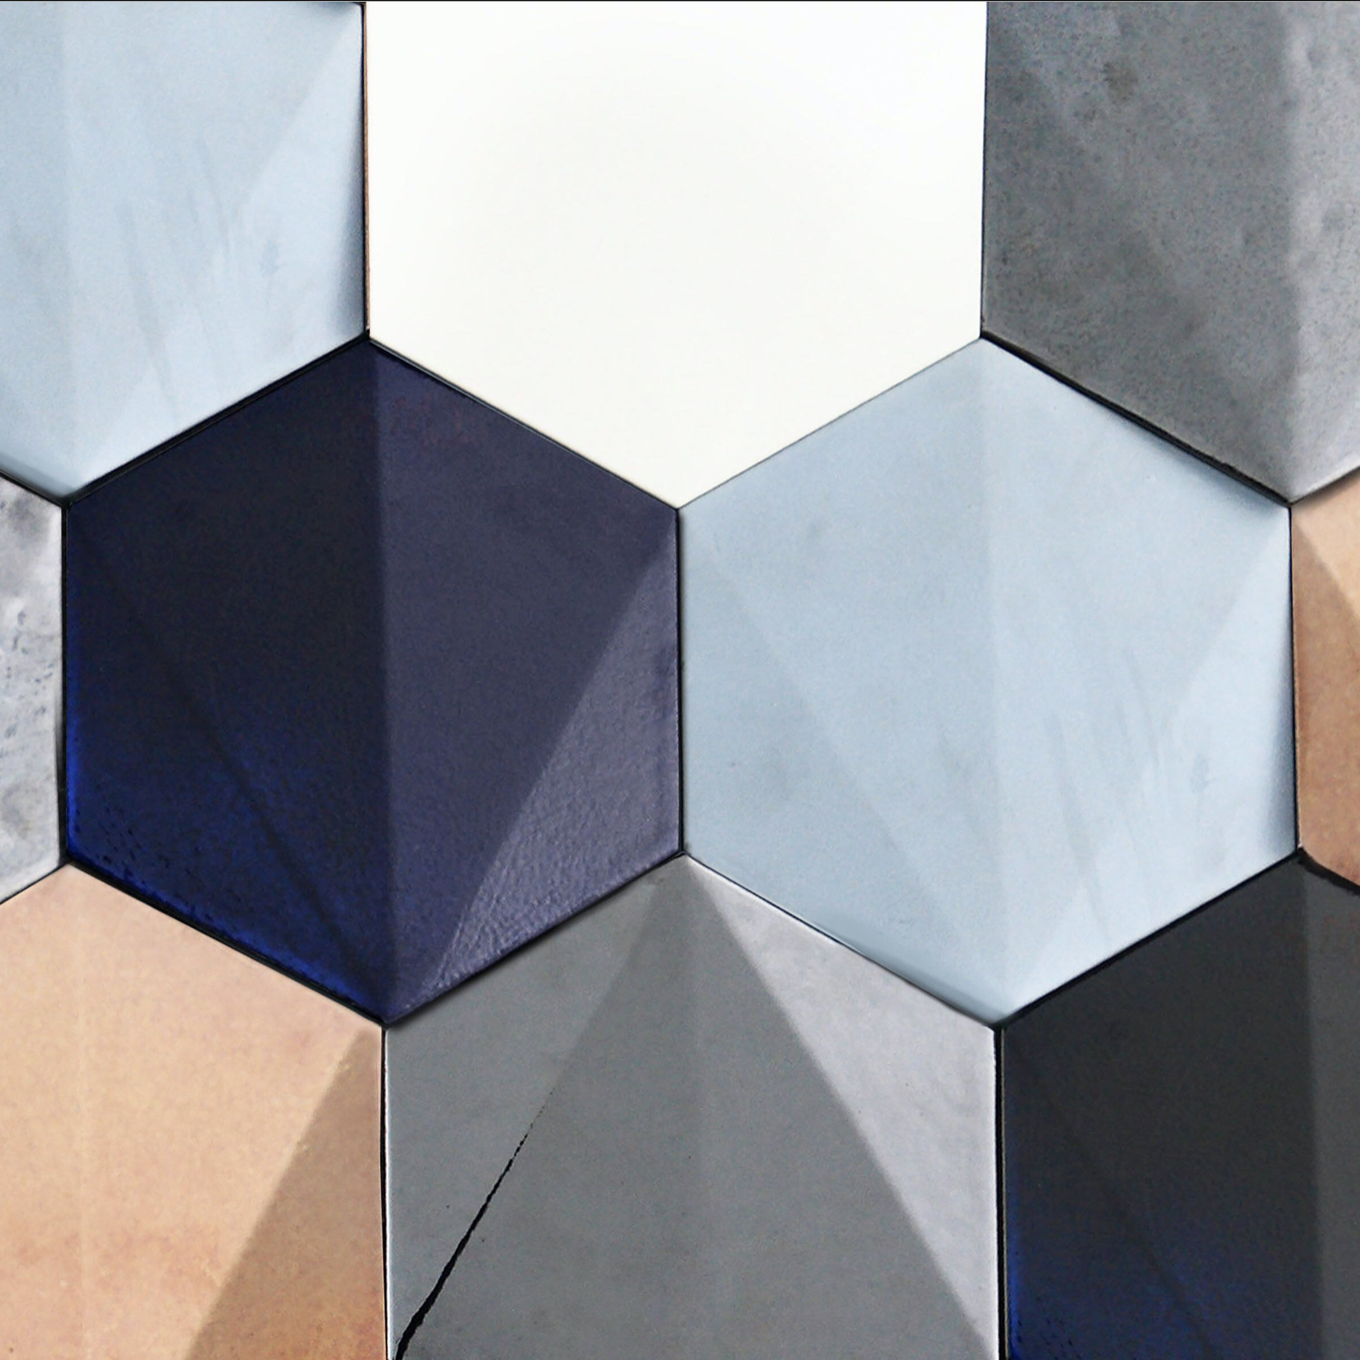 Hexagon 3D Tile - Simple Colour - Our Hexagon tiles are handmade 3D Hexagonal asymmetric pyramids, perfect to create vibrant walls and vertical surfaces, suitable for both indoors and outdoor.  Hexagon tiles are ideal for commercial spaces and residential projects.  These tiles can be produced using single or mixed colours, as well as any bespoke glazing effect.  Hand-crafted in Italy. | Matter of Stuff